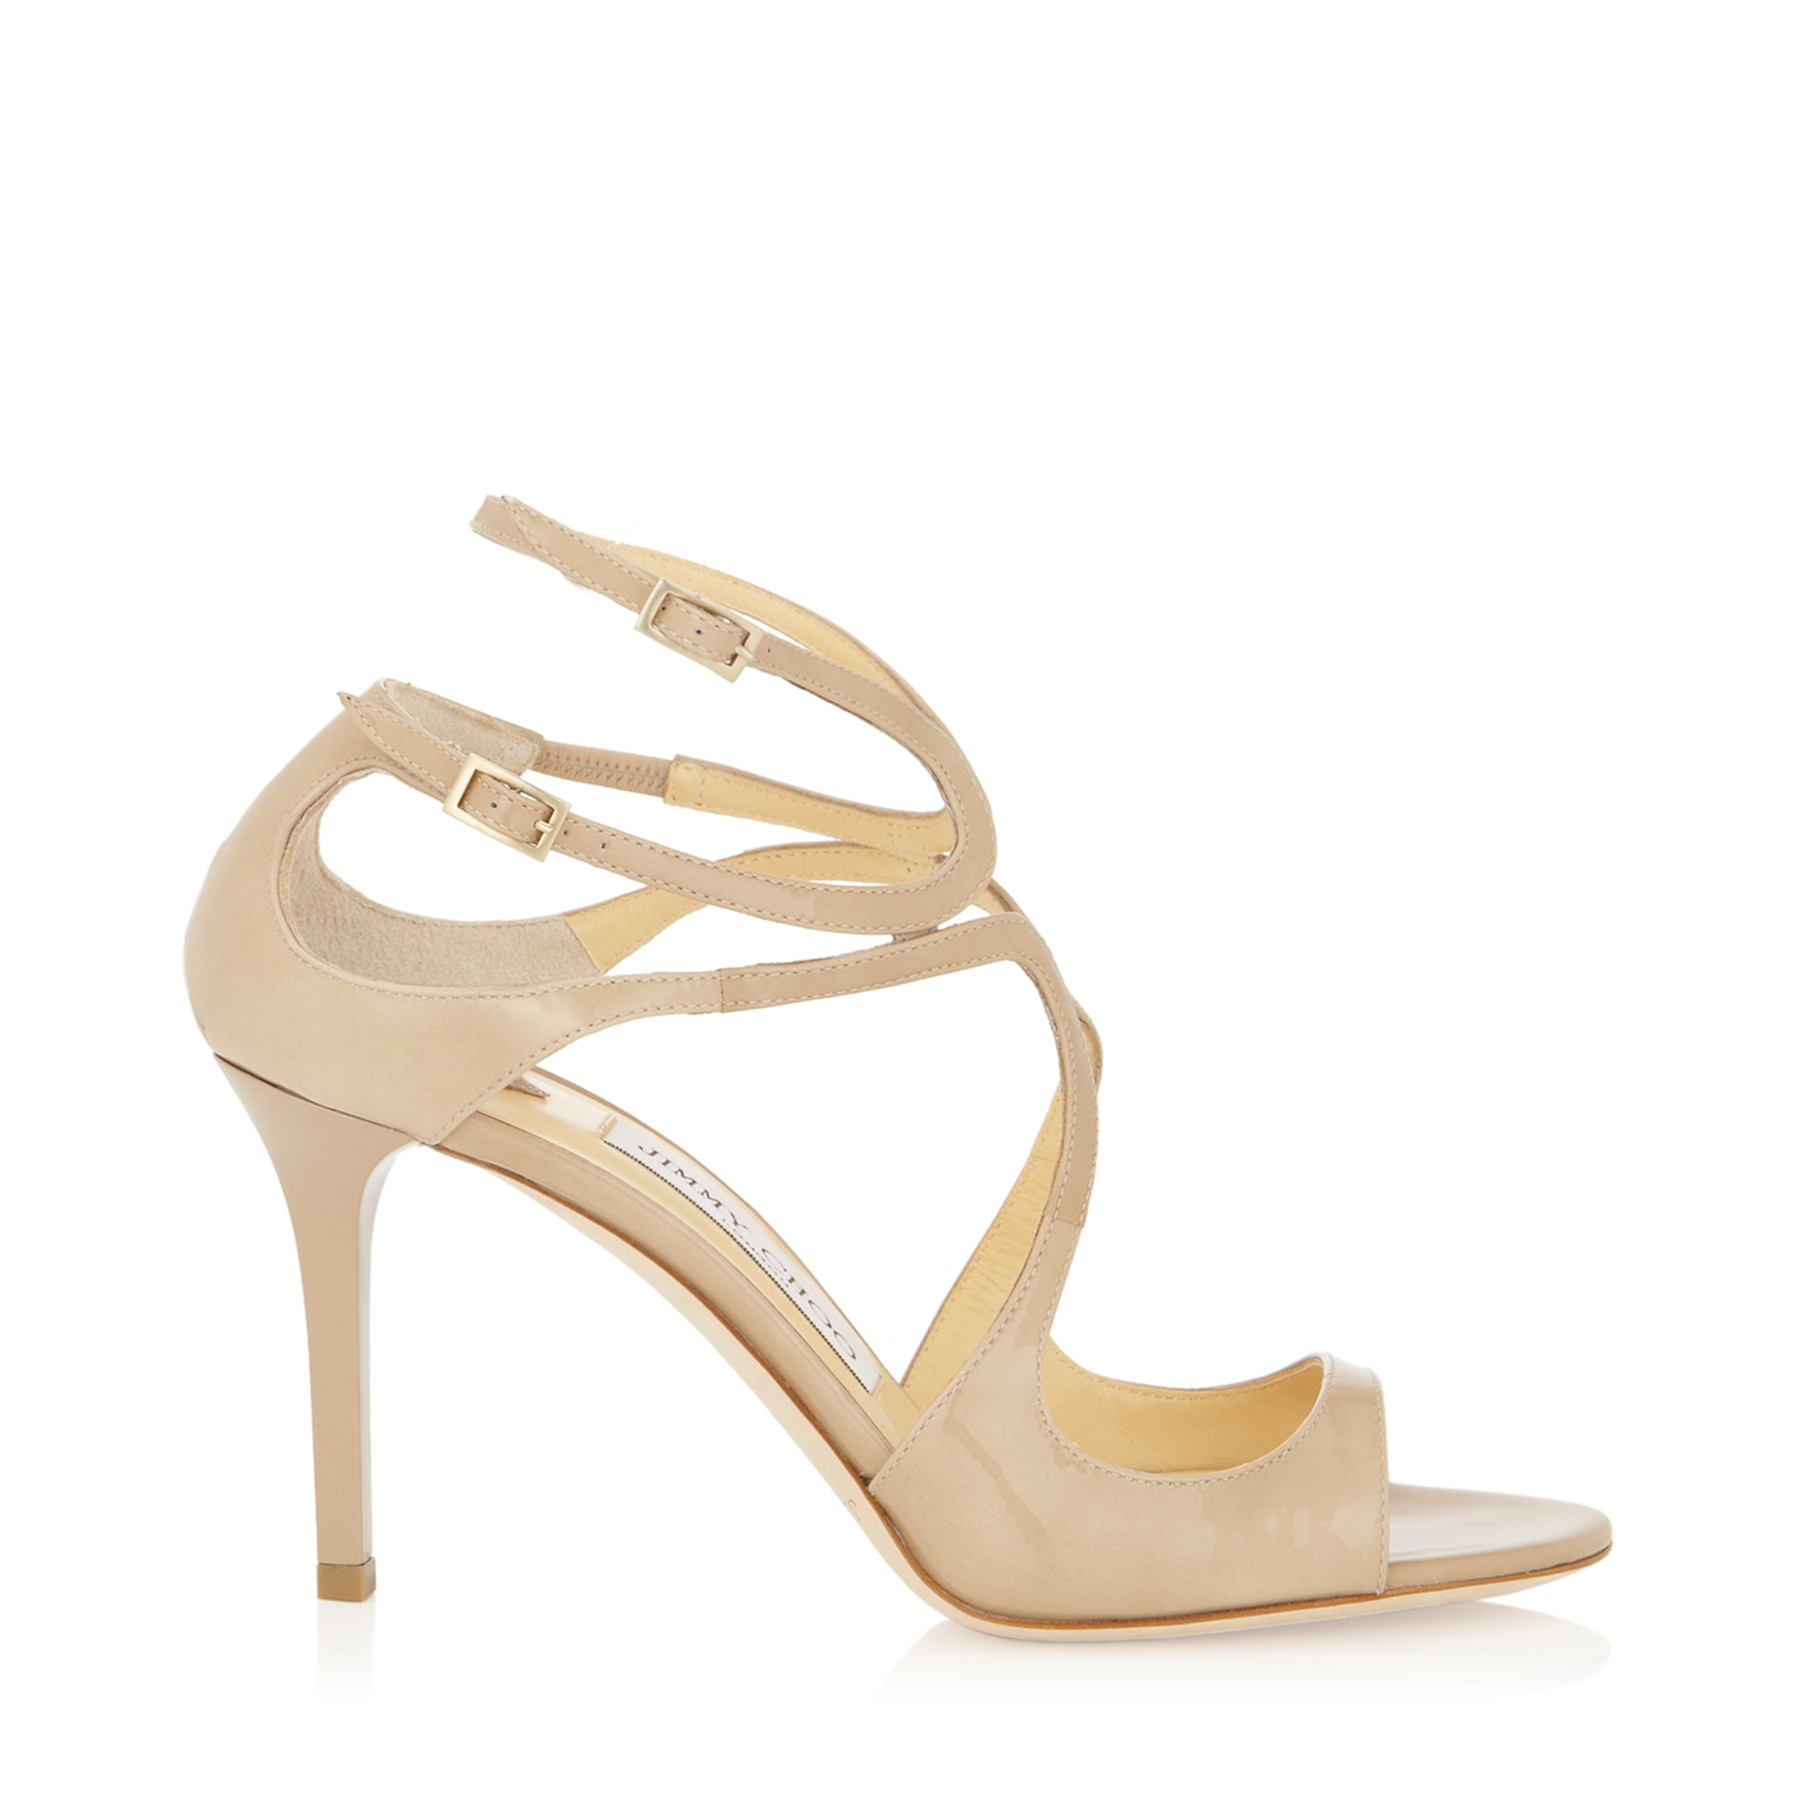 jimmy choo female ivette nude patent leather strappy sandals